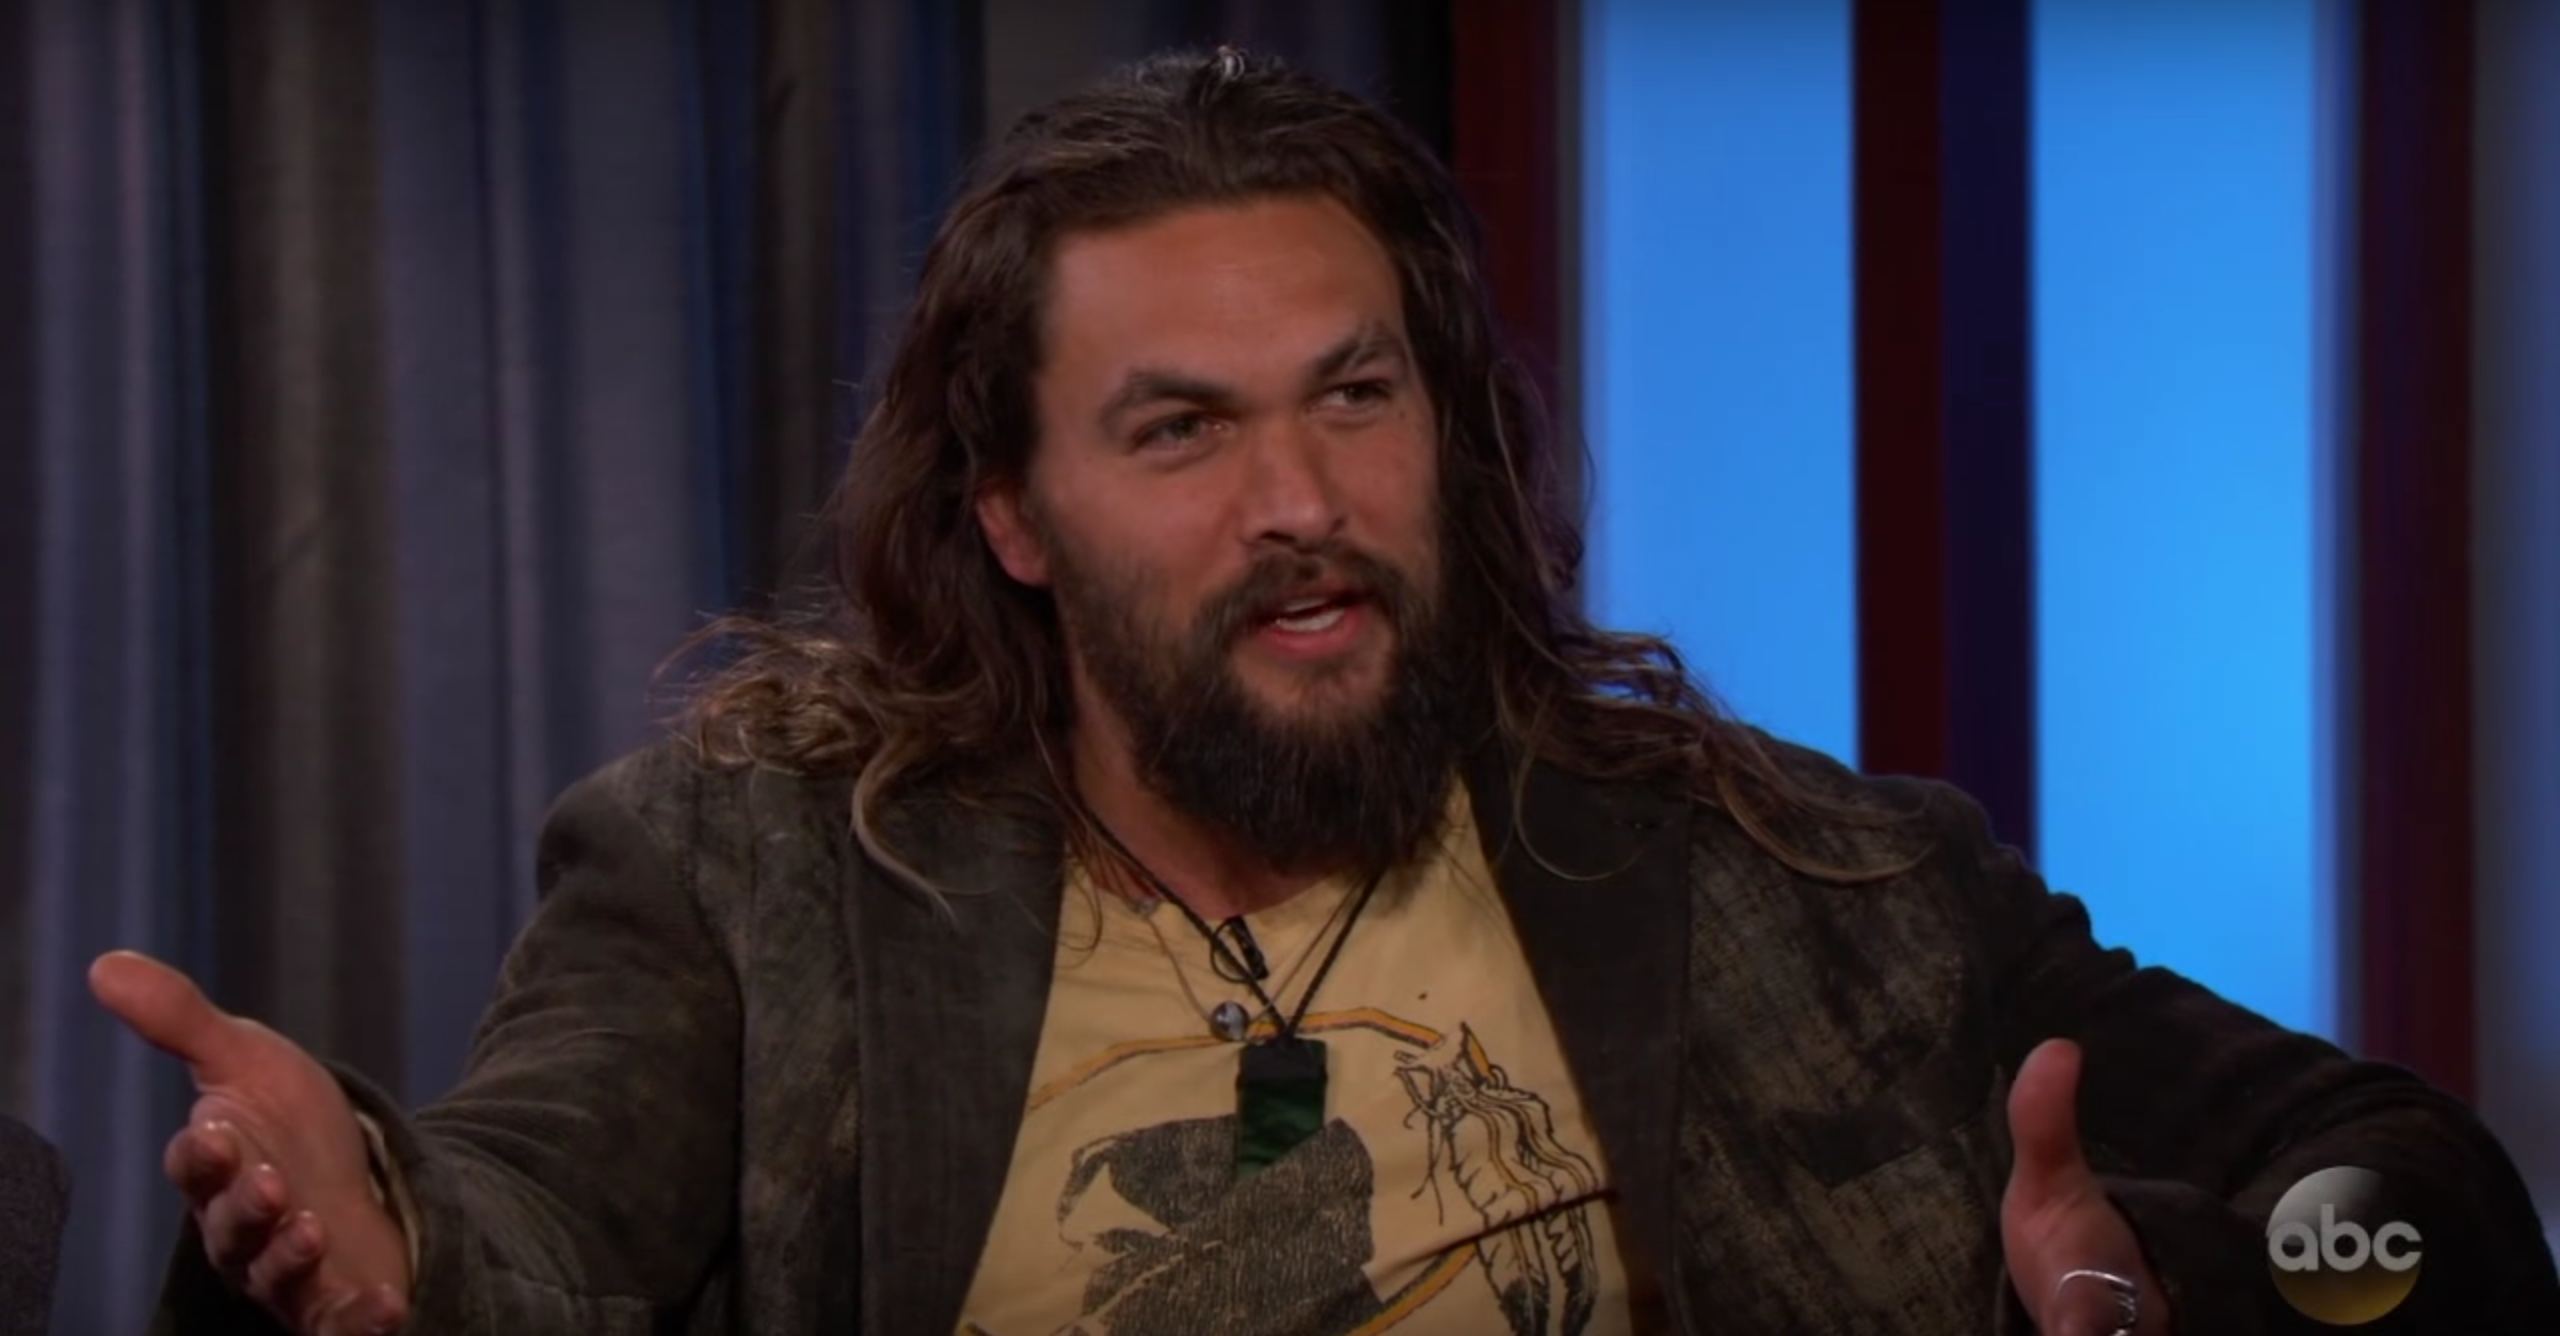 Jason Momoa, actual Khal Drogo, casually hurled axes onstage while drinking a Guinness